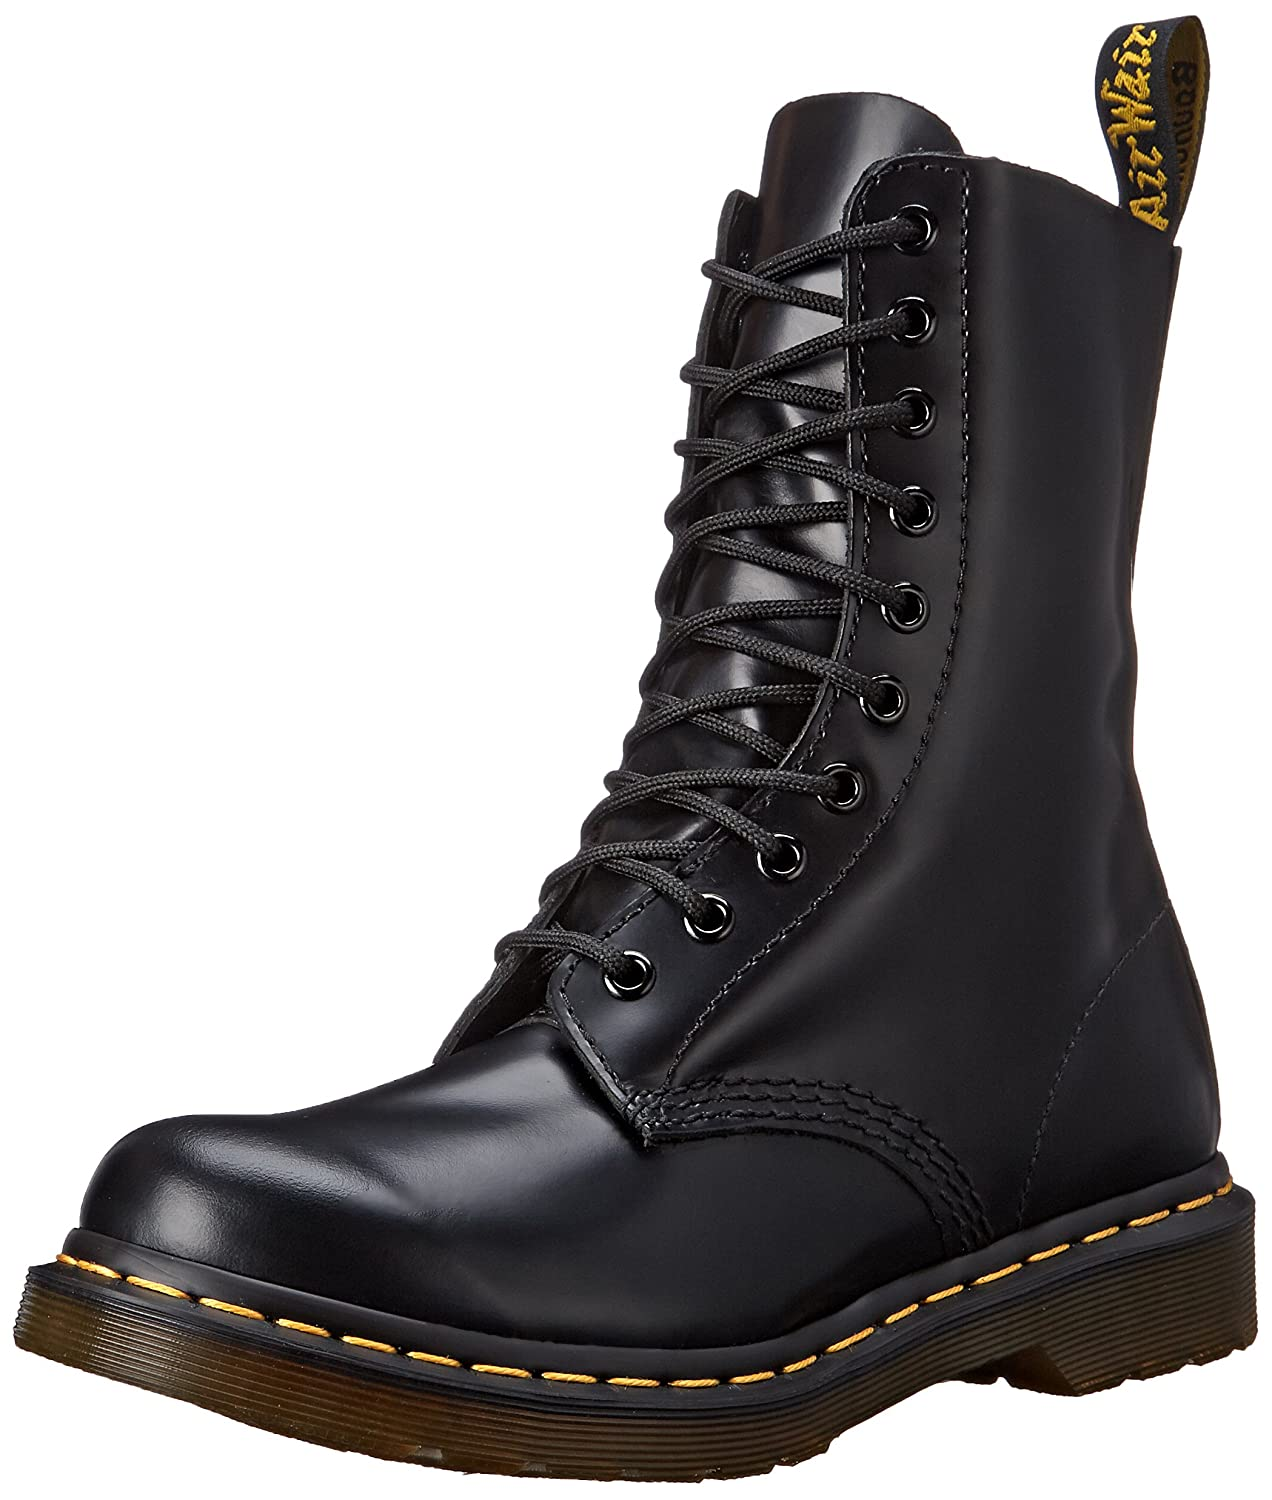 Dr. Martens Women's 1490 W 10 Eye Boot B000NYHQ82 4 UK/6 M US|Black Smooth